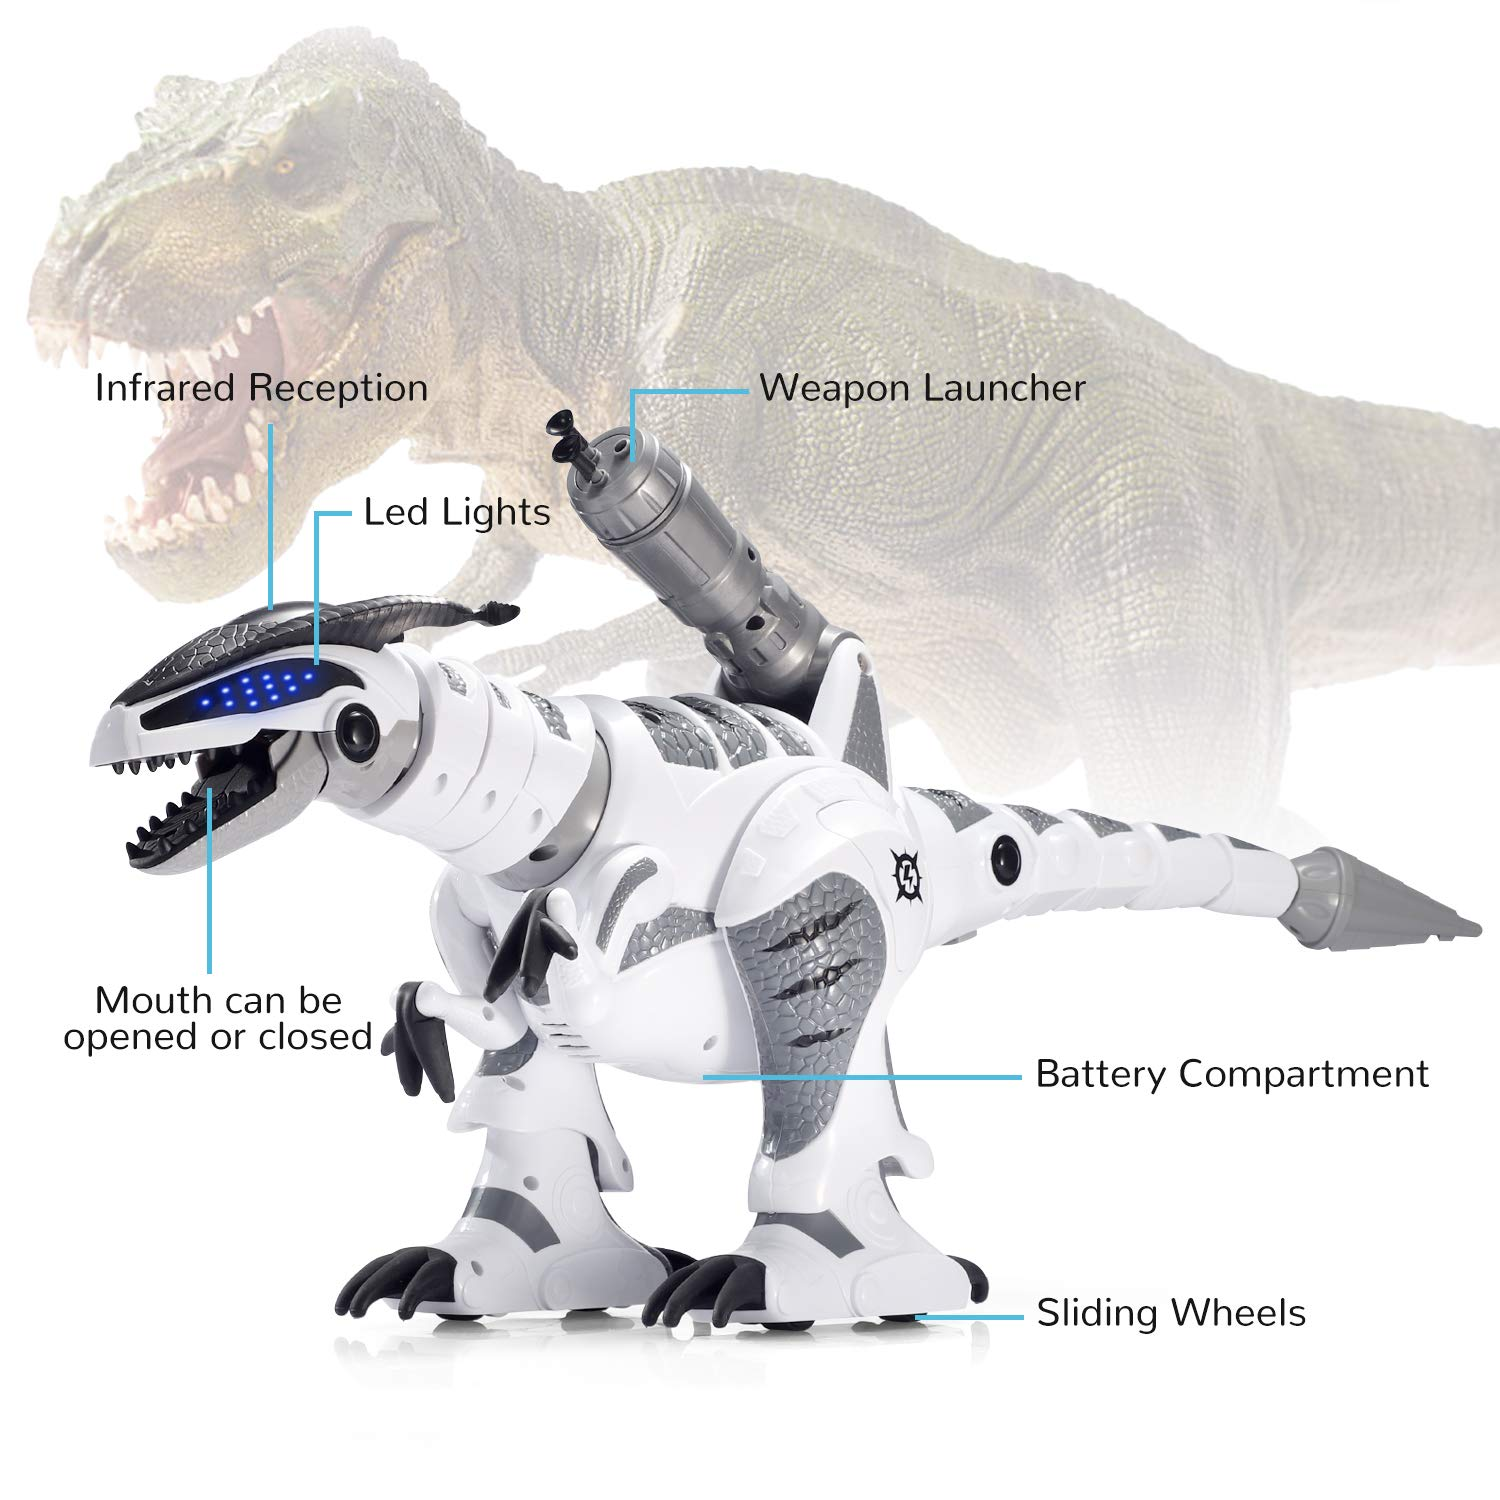 SGILE RC Dinosaur Robot Toy, Smart Programmable Interactive Walk Sing Dance for Kids Gift Present by SGILE (Image #5)